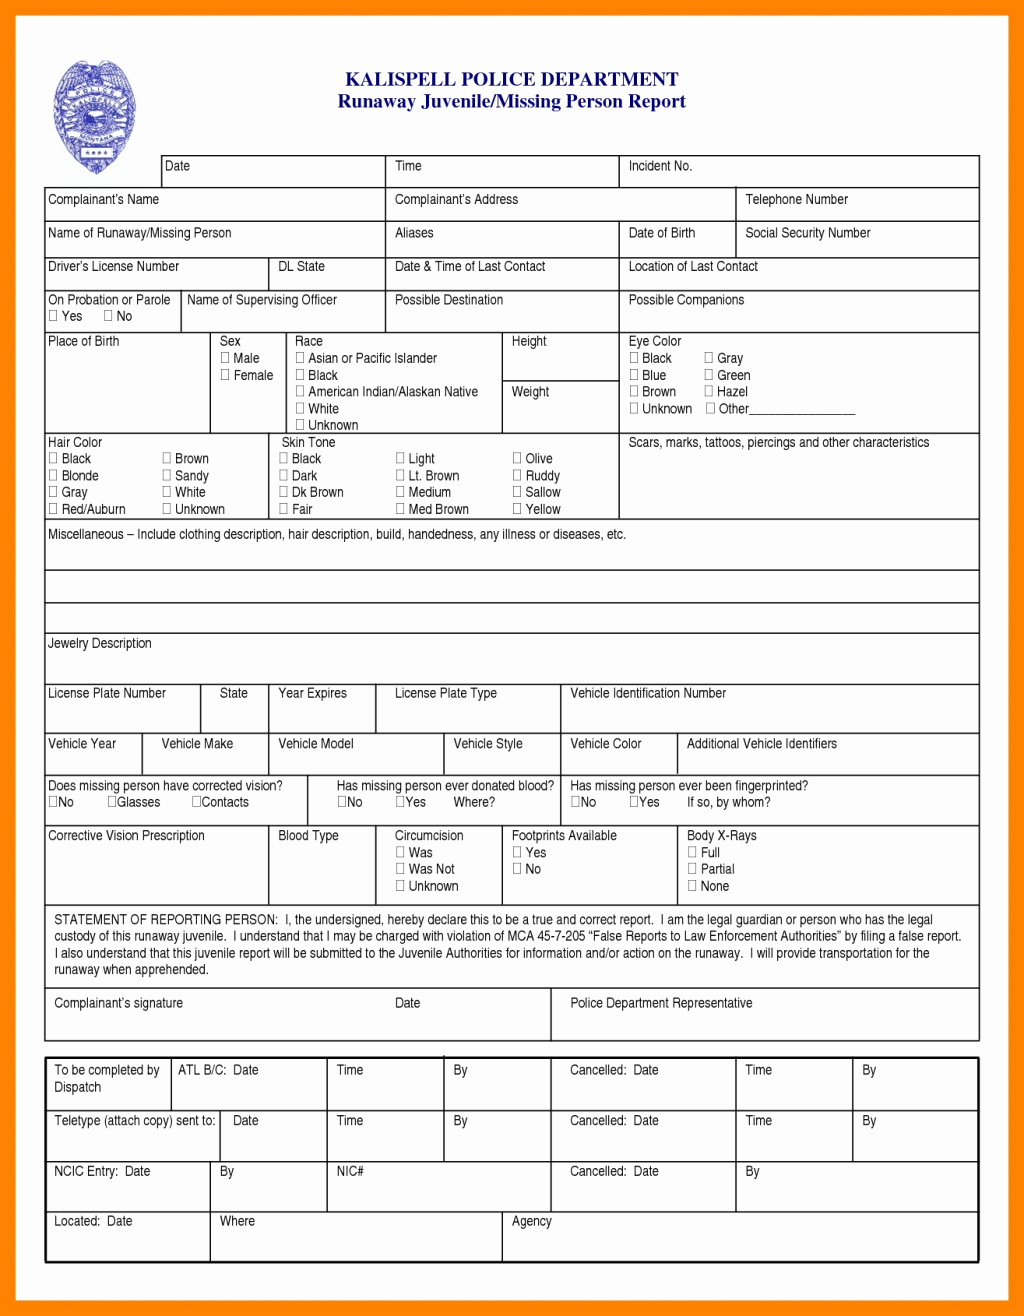 Police Report Template Pdf Best Of Policeeport Template Blank Pdf Example Ks2 Incident